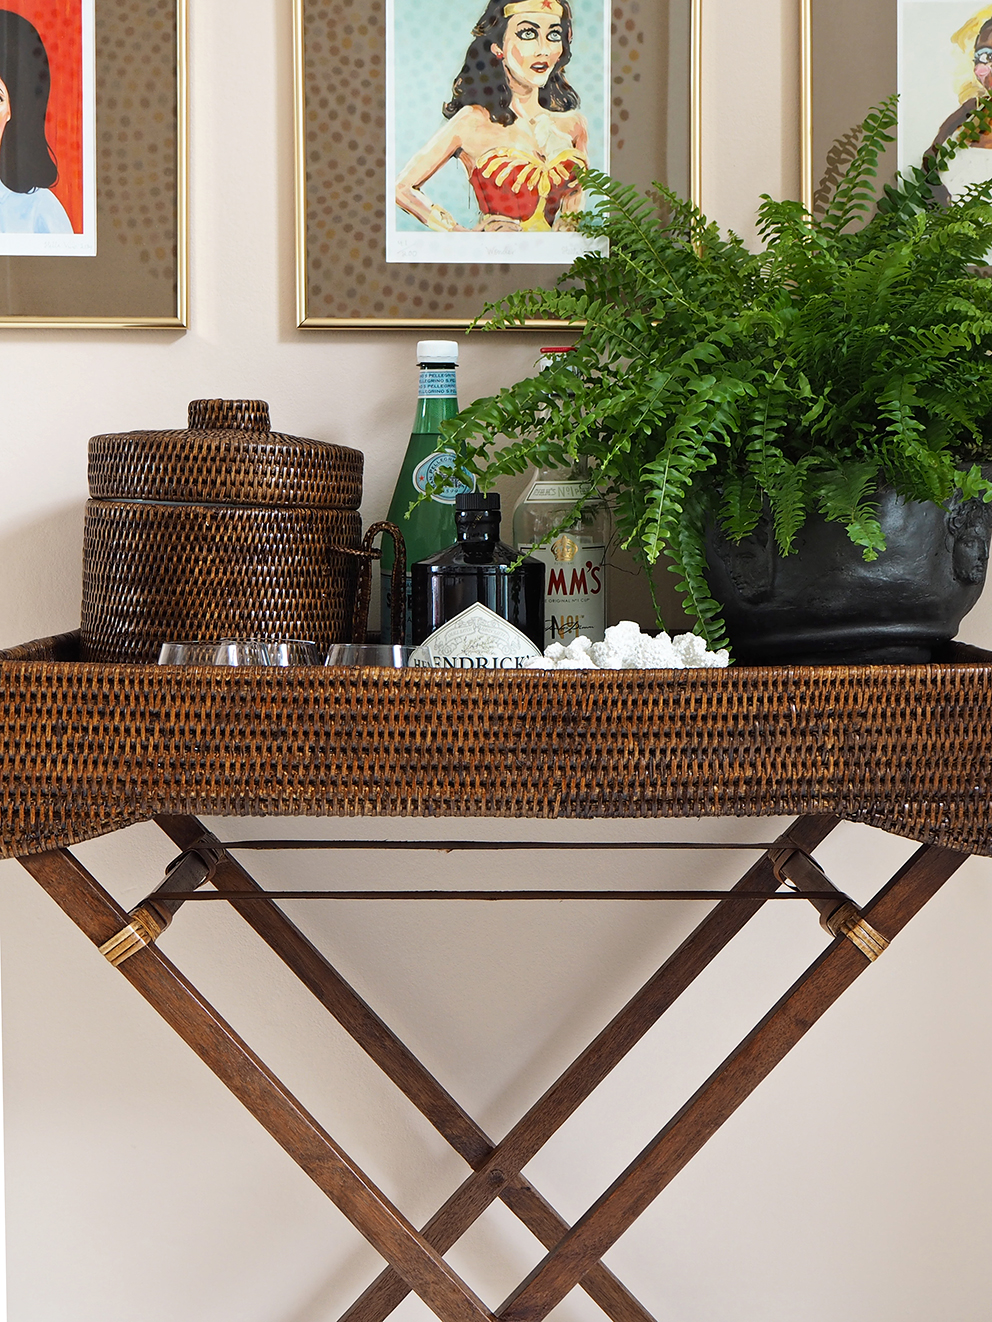 French For Pineapple Blog - Kalinko - Rattan Butlers Tray